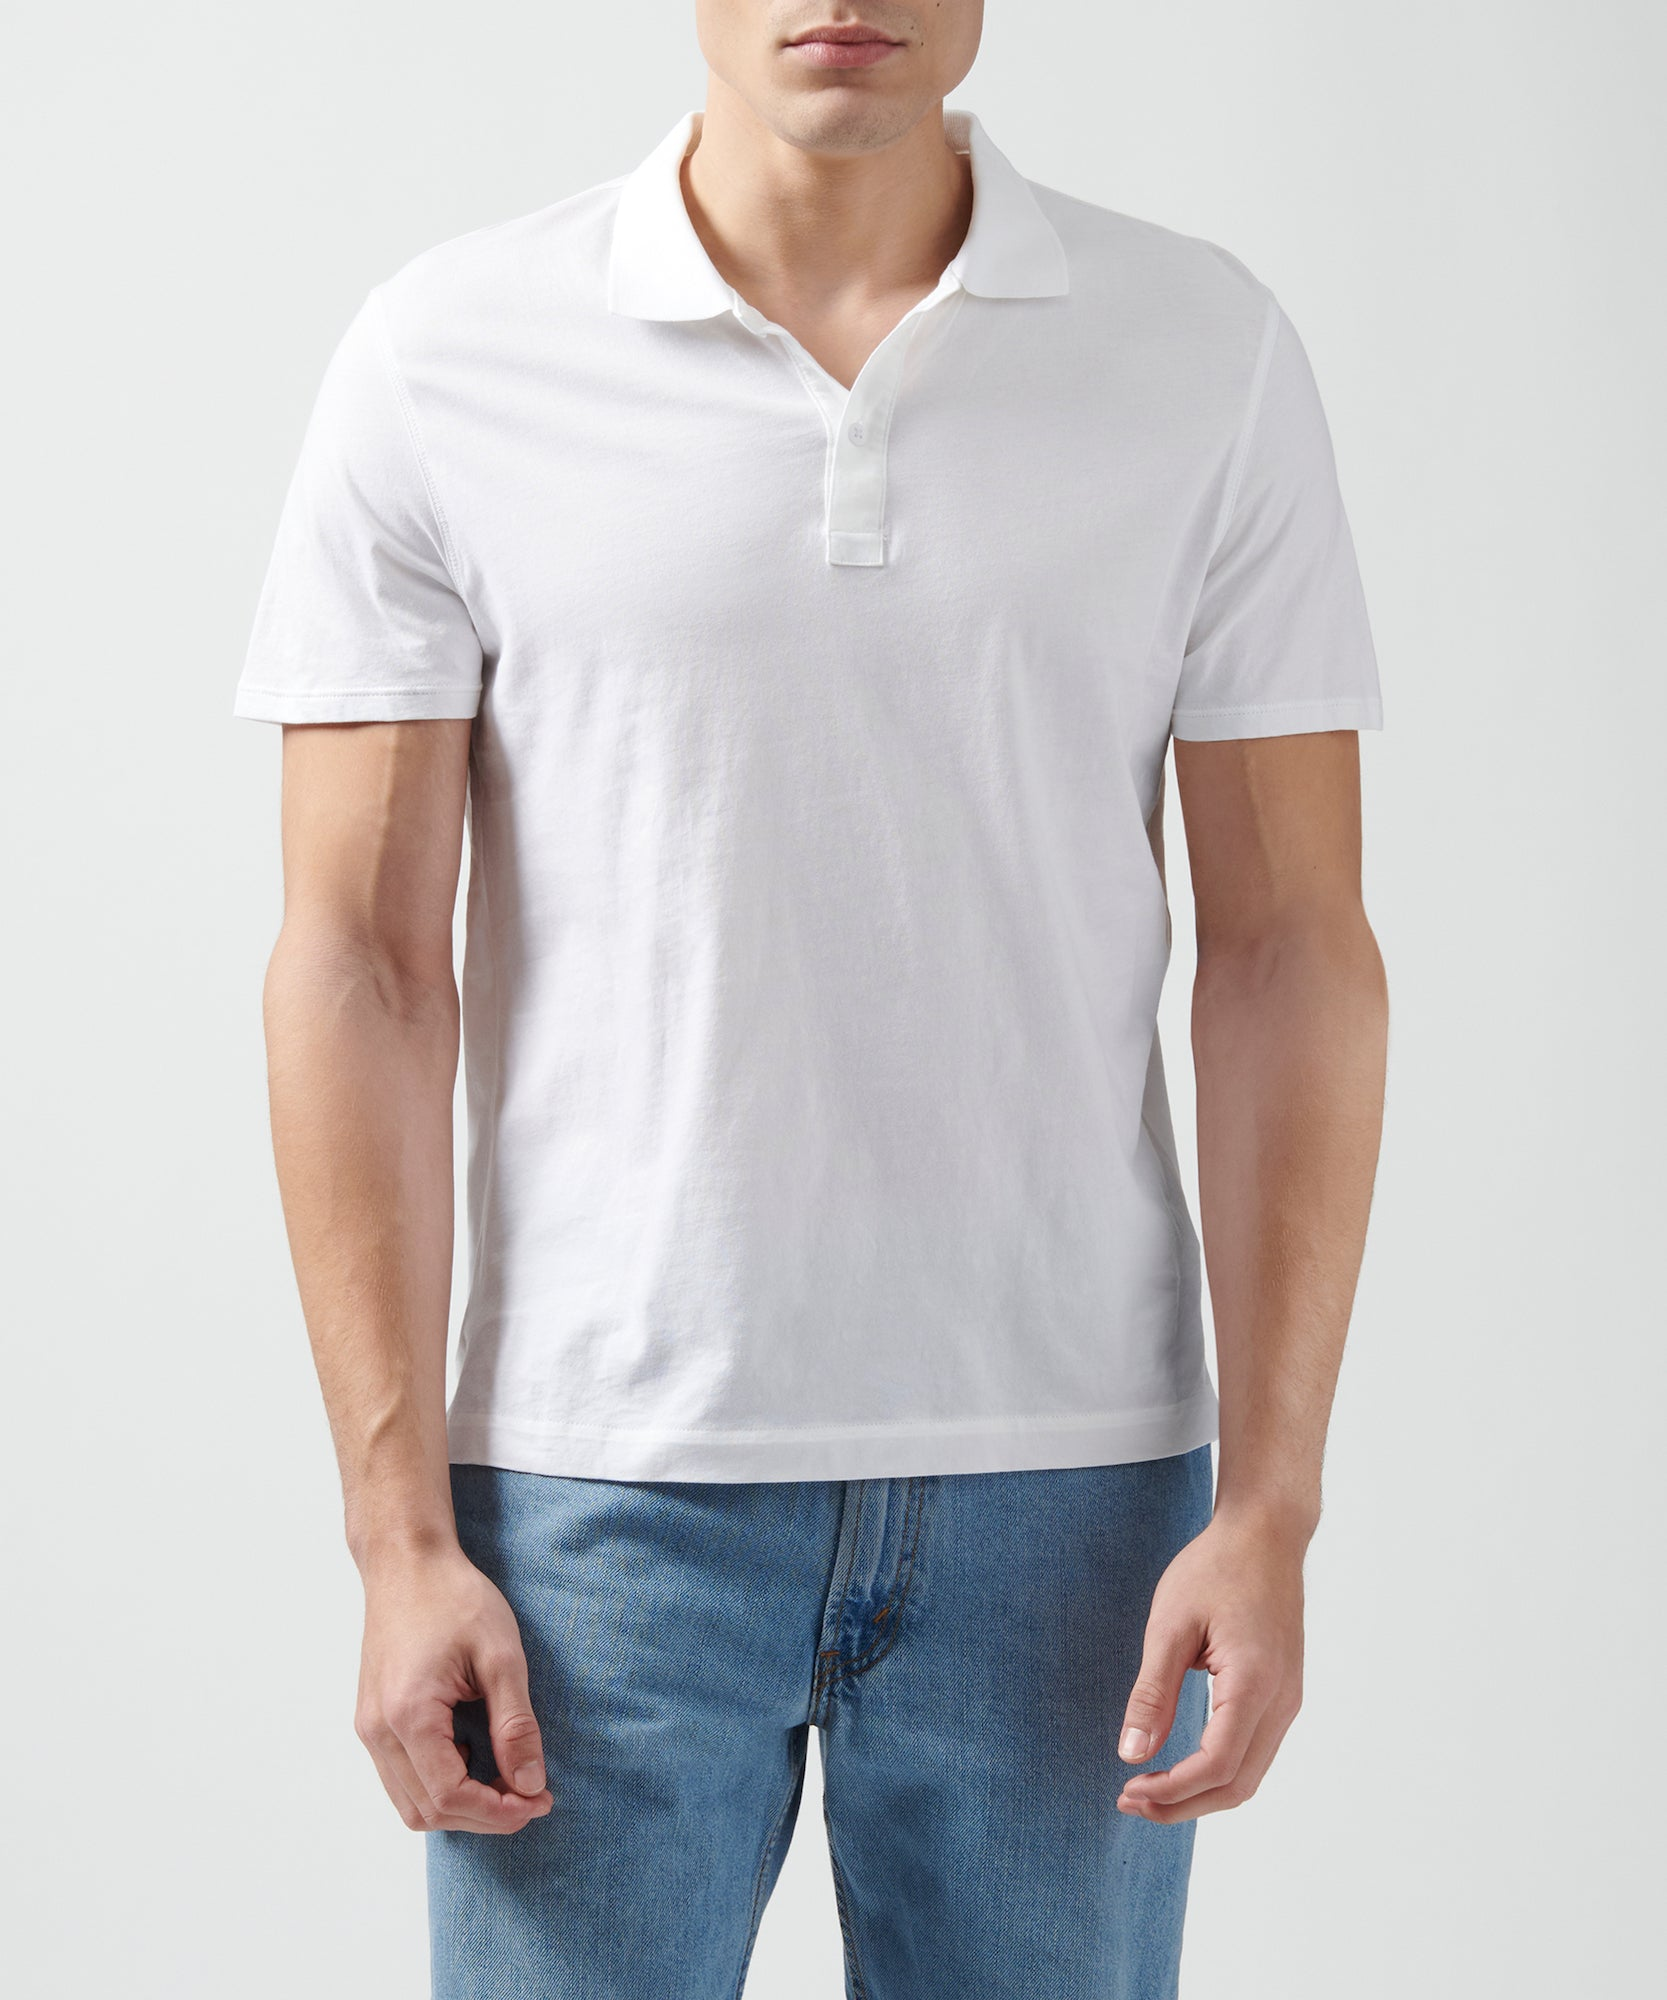 White Classic Jersey Short Sleeve Polo - Men's Polo Shirt by ATM Anthony Thomas Melillo